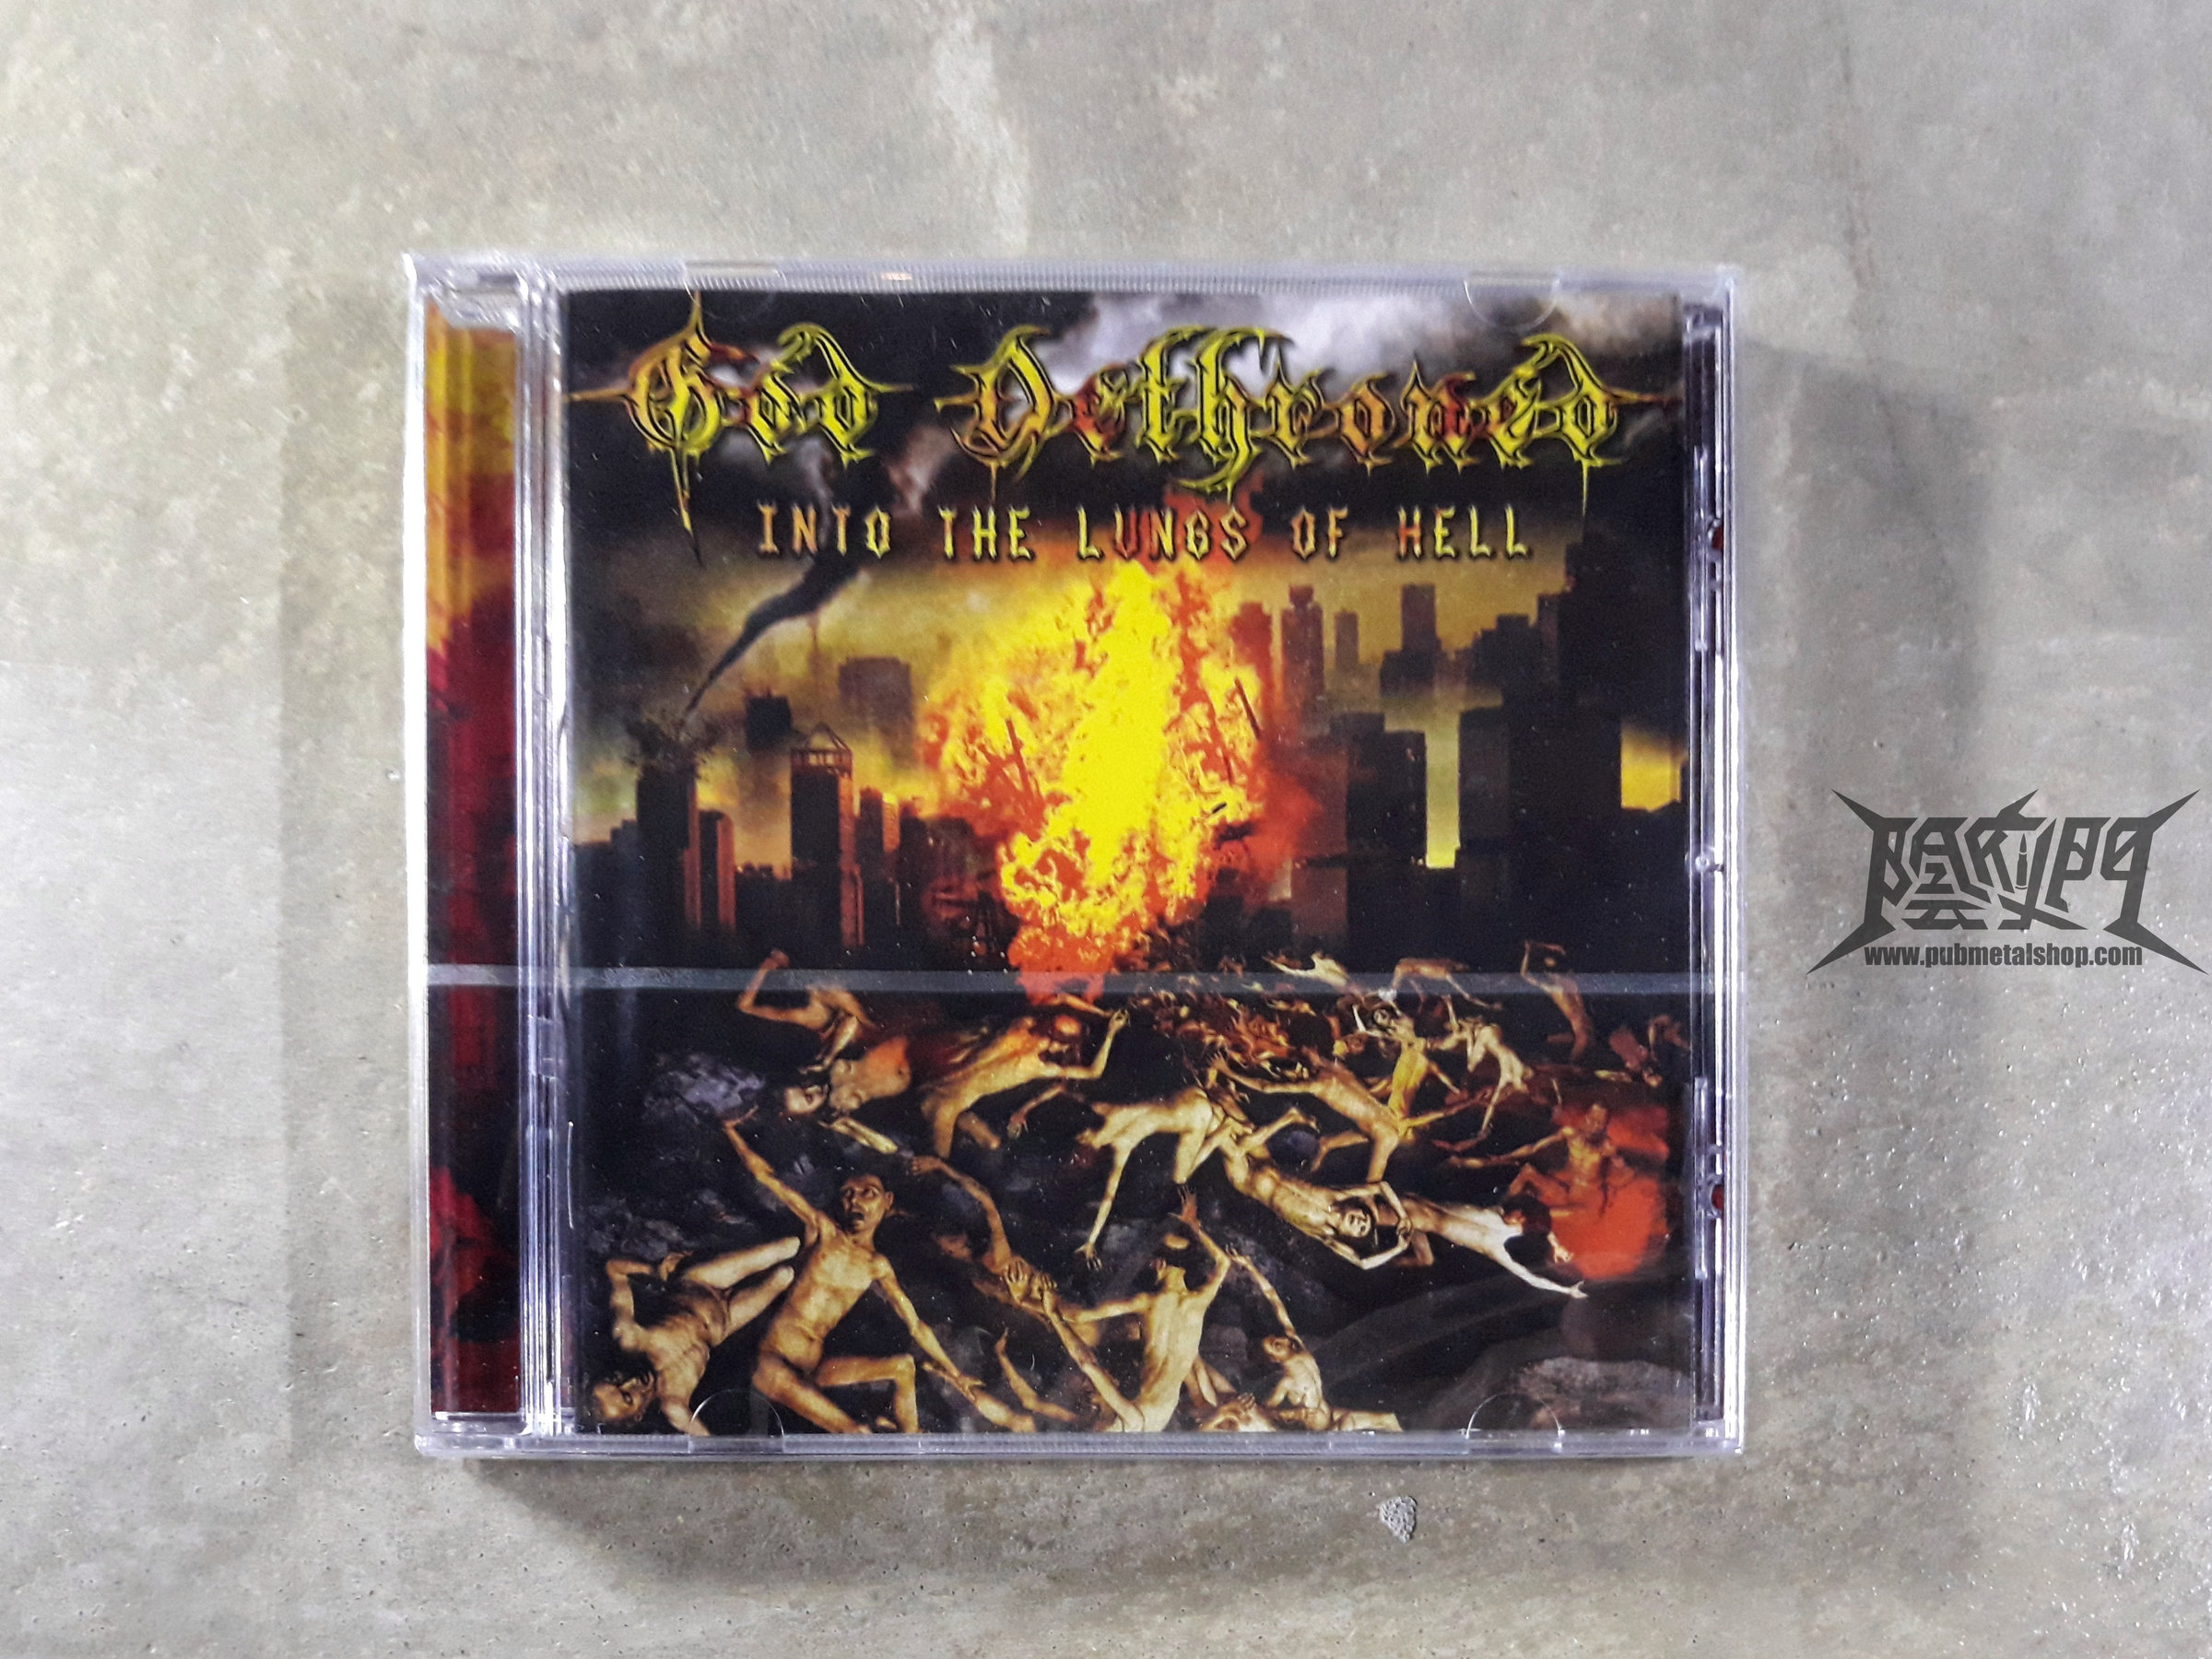 GOD DETHRONED - Into The Lungs Of Hell CD.jpeg.jpg